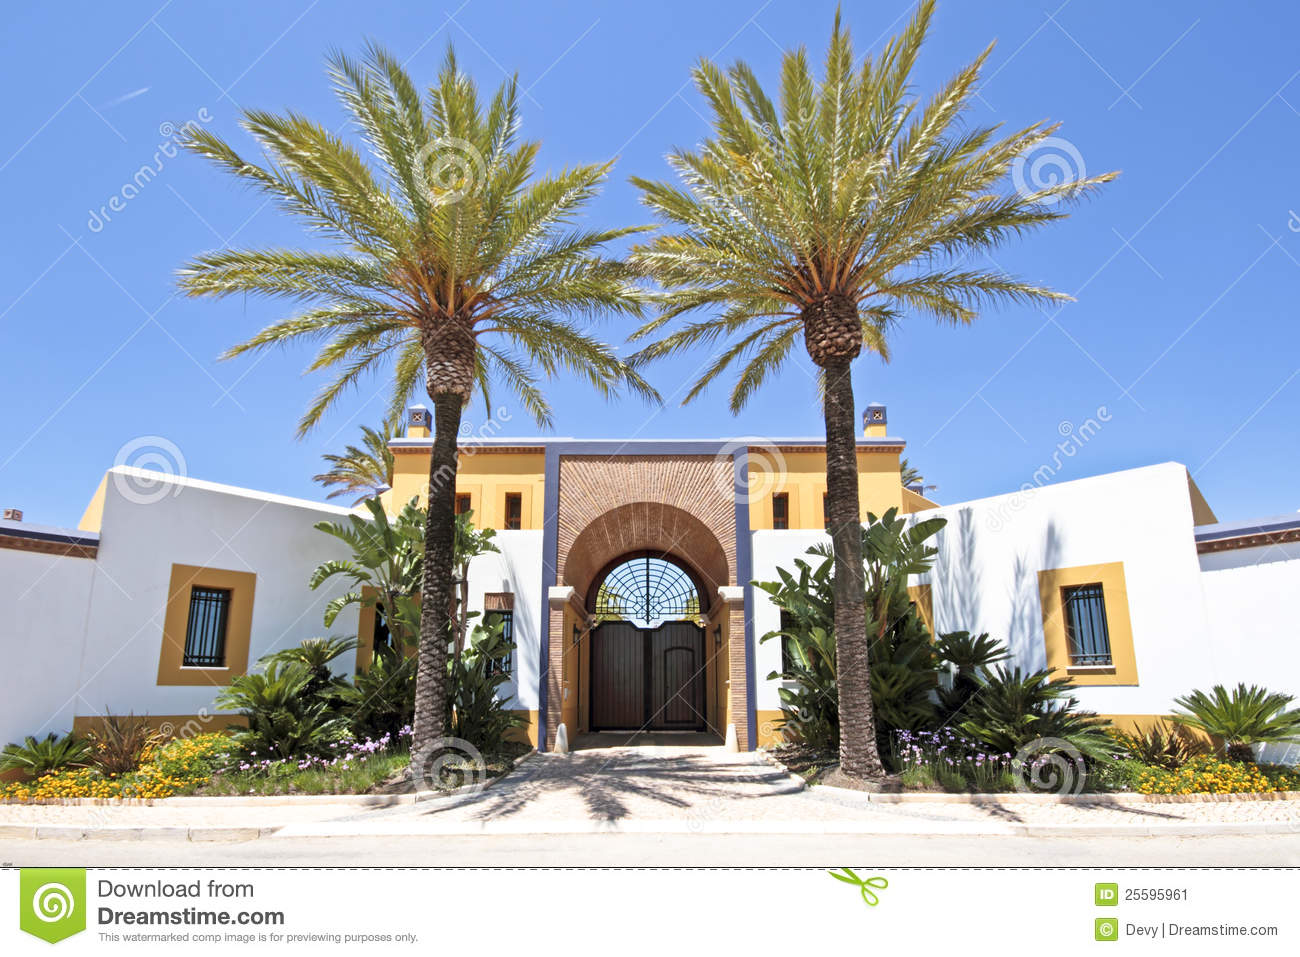 Gate with palm trees stock image